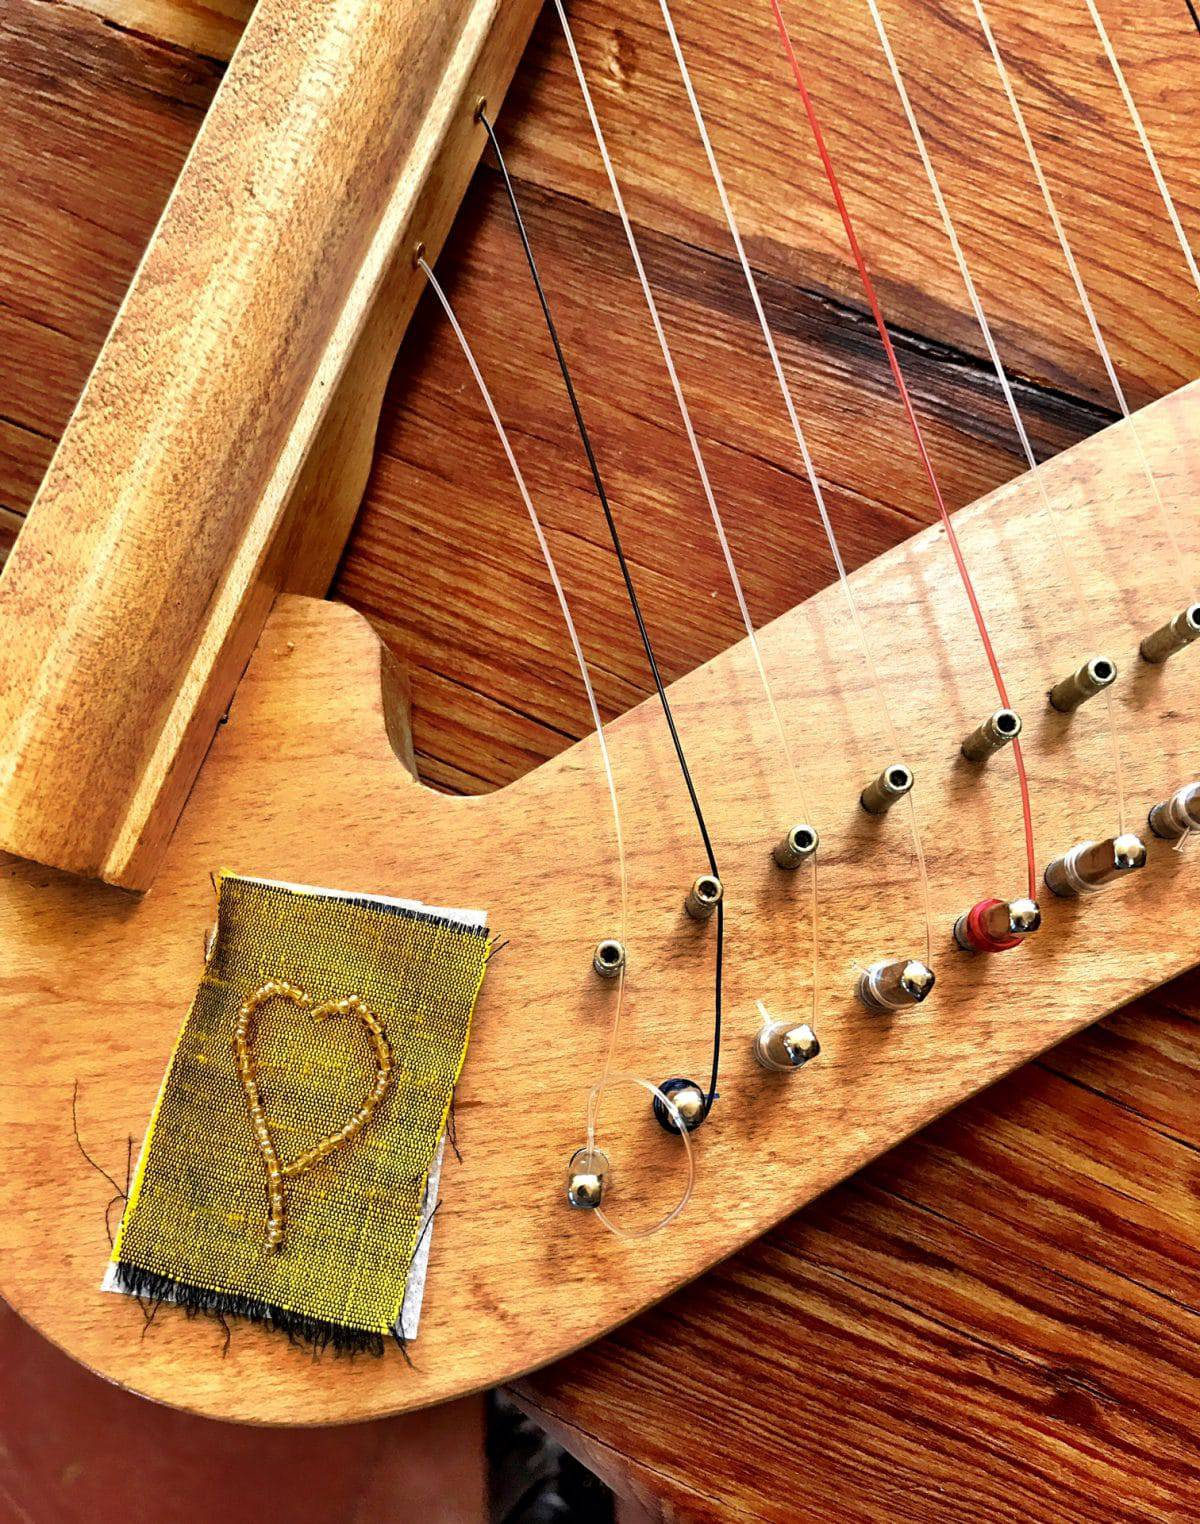 ©2016, Mary Ellen Merrigan, This picture illustrates the Little fingering component for beyond brainstorming in the making of an embellished harp by Mary Ellen Beads Albuquerque.